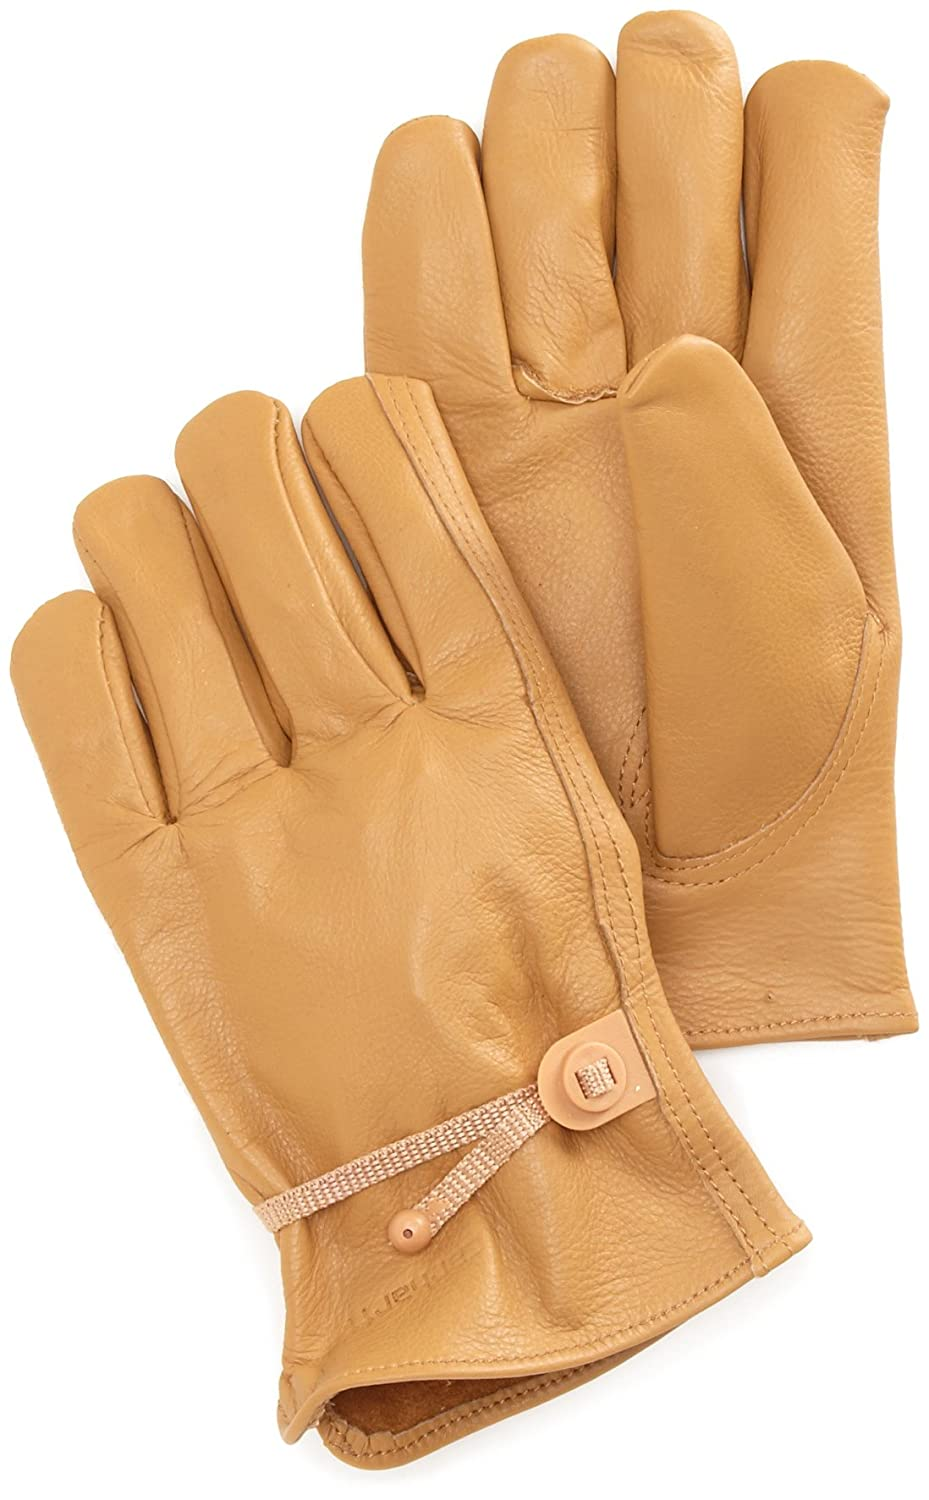 Driving gloves benefits - Amazon Com Carhartt Men S Full Grain Leather Driver Work Glove Brown Small Clothing